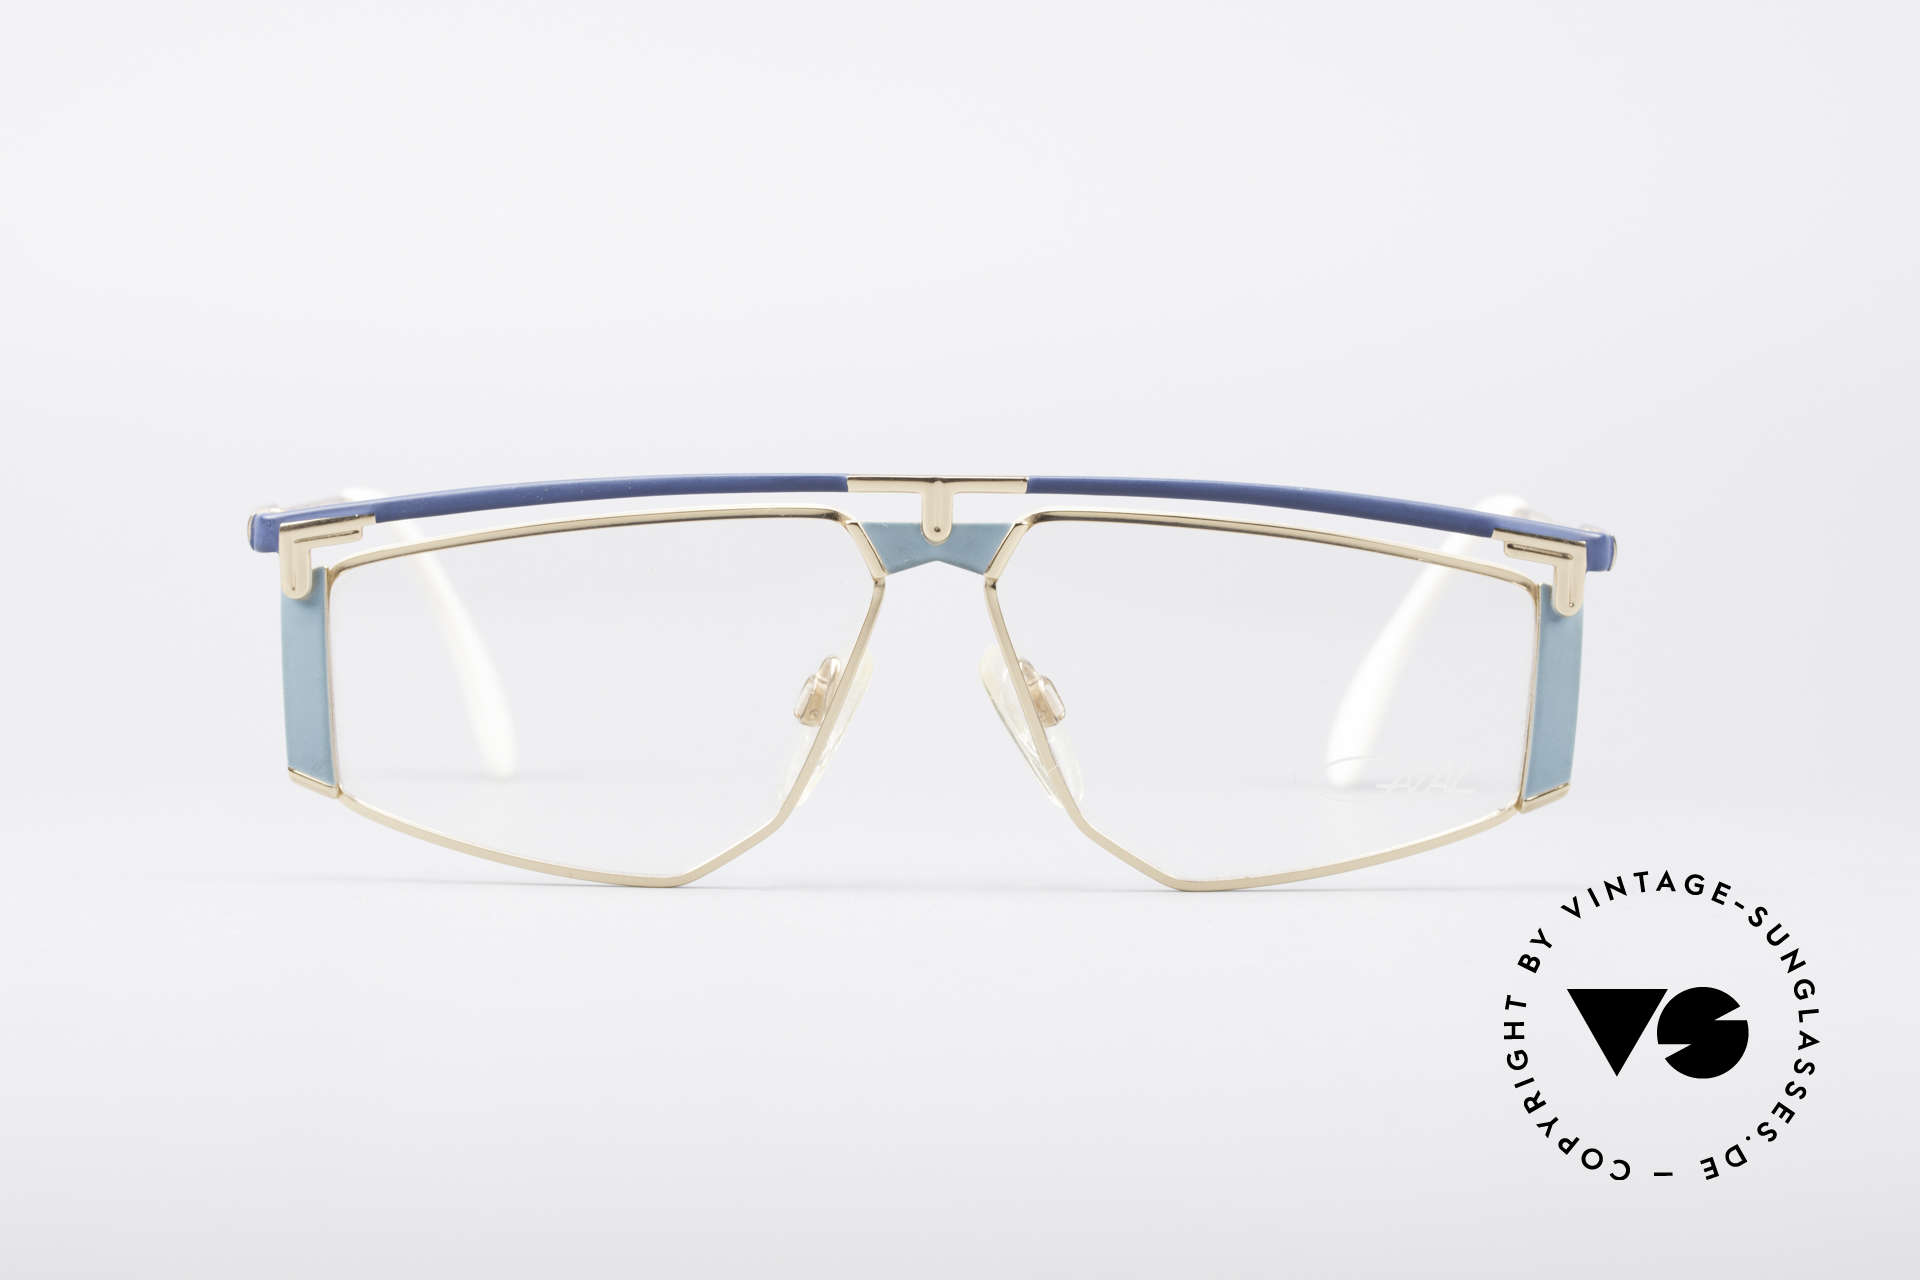 Cazal 235 Titanium Vintage 80's Cazal, 1. class wearing comfort thanks to lightweight material, Made for Men and Women